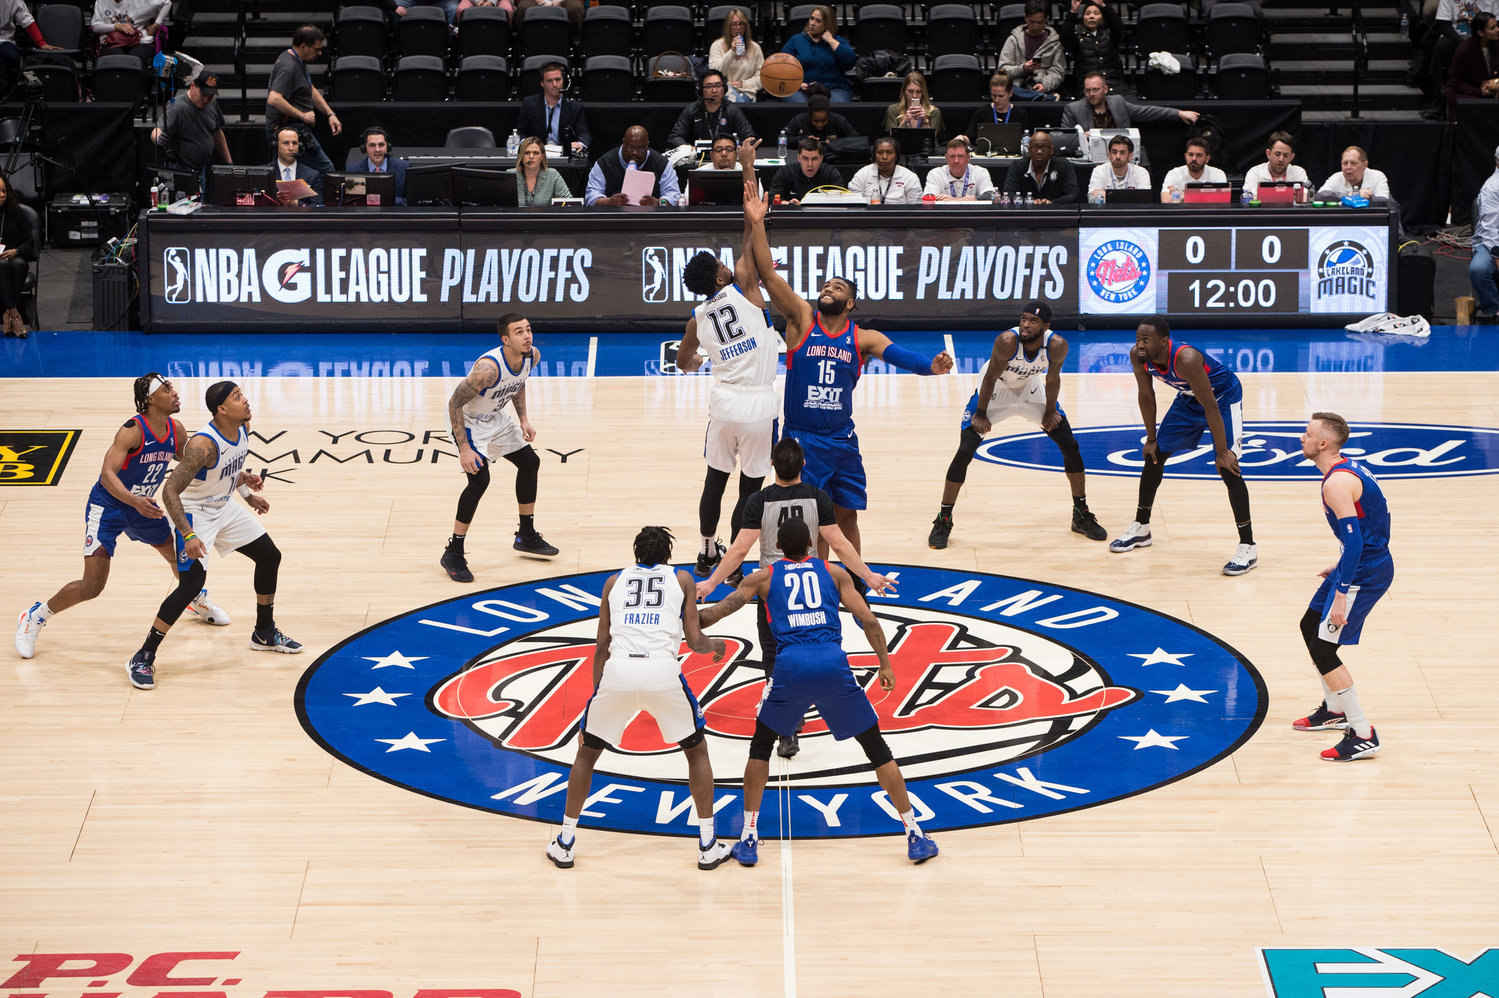 The Nets will be tipping off the G League finals against Rio Grande this Sunday evening.